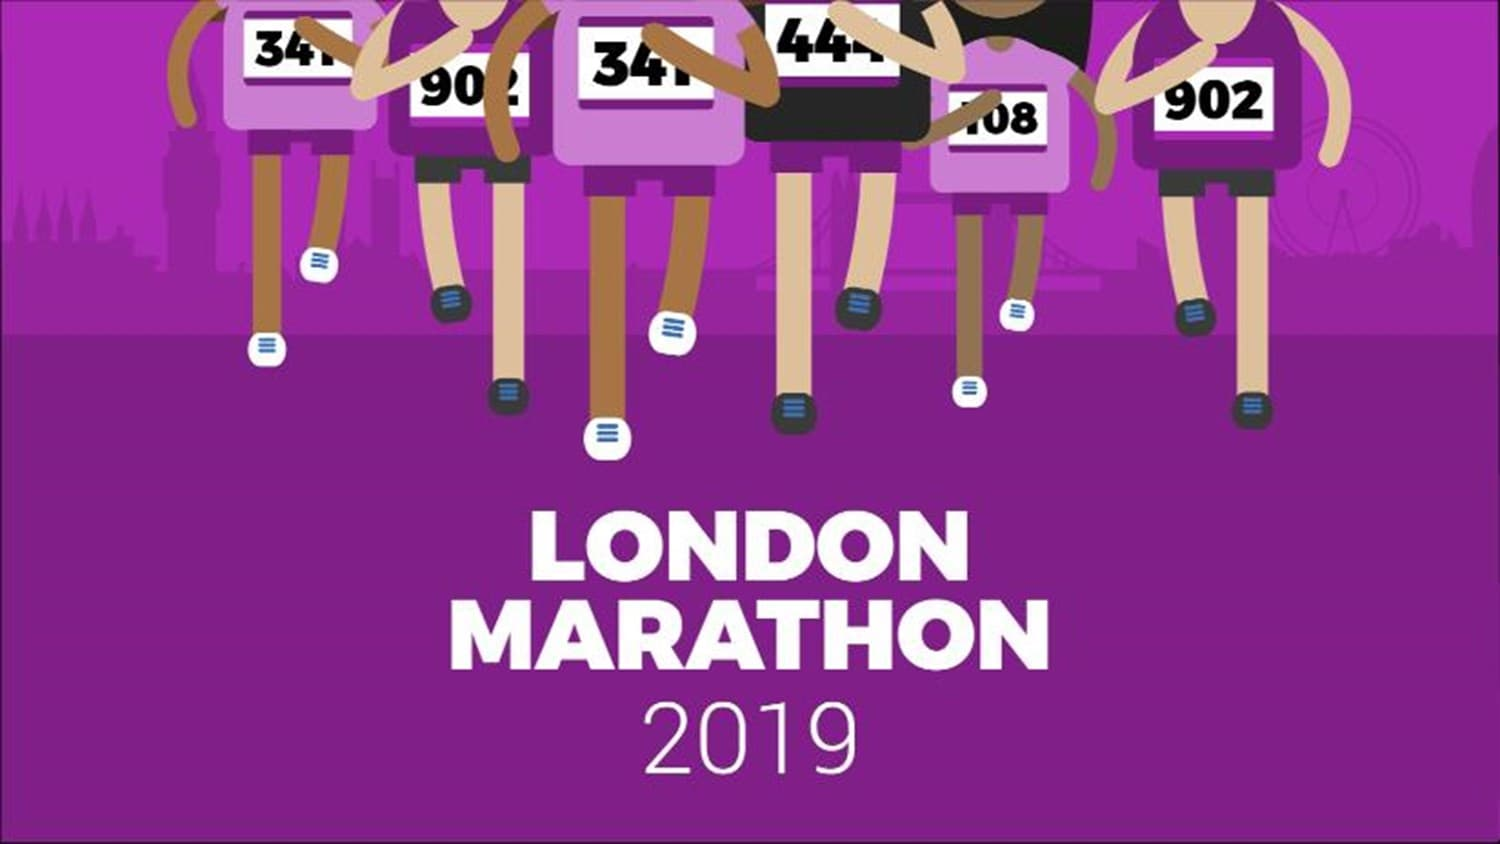 CBHC's Tom Perry to run the Virgin Money London Marathon 2019